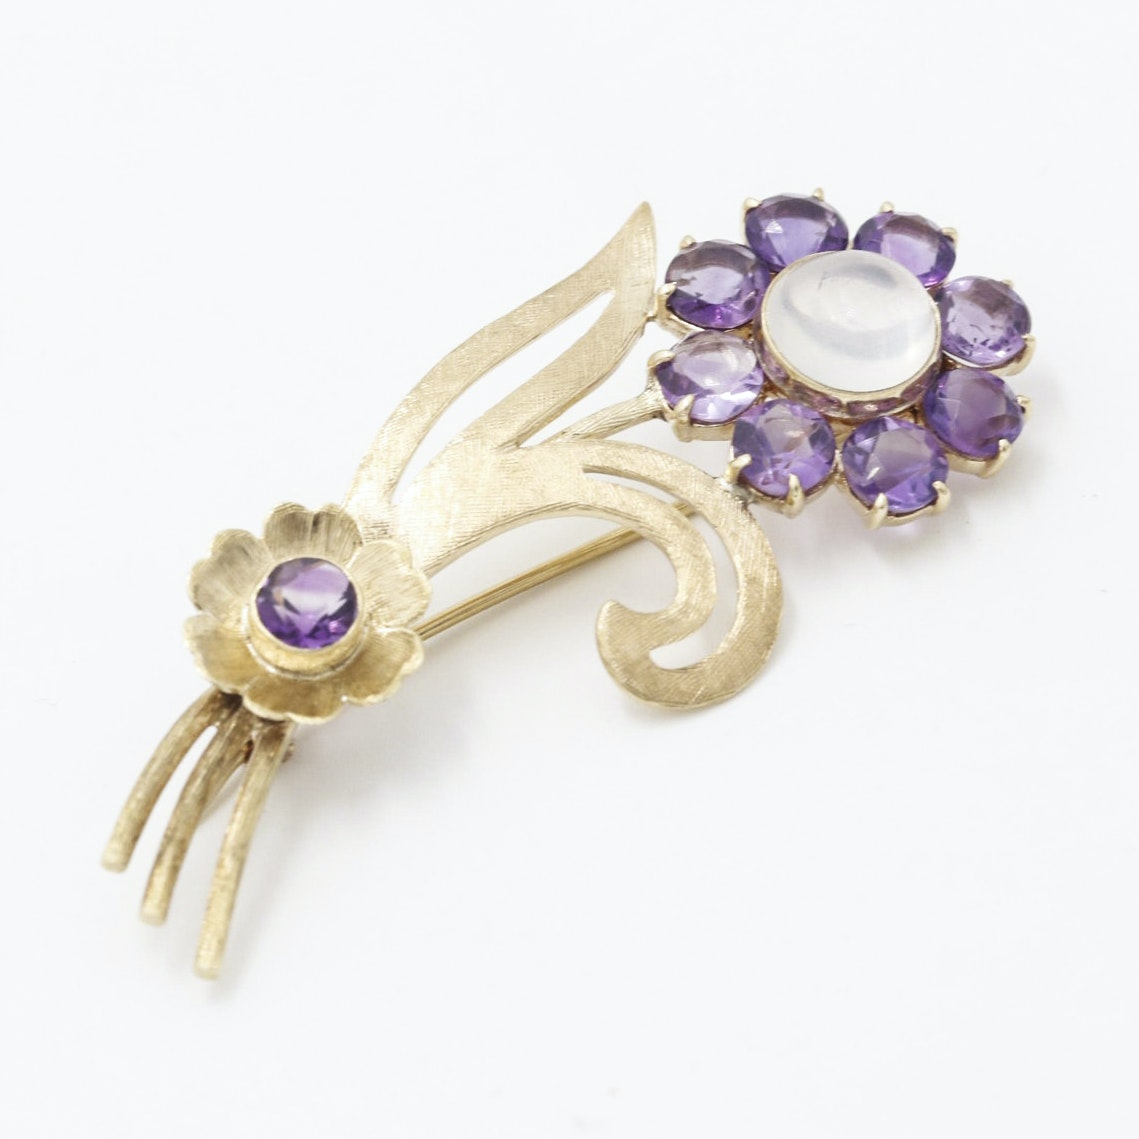 14K Yellow Gold Amethyst and Moonstone Flower Brooch